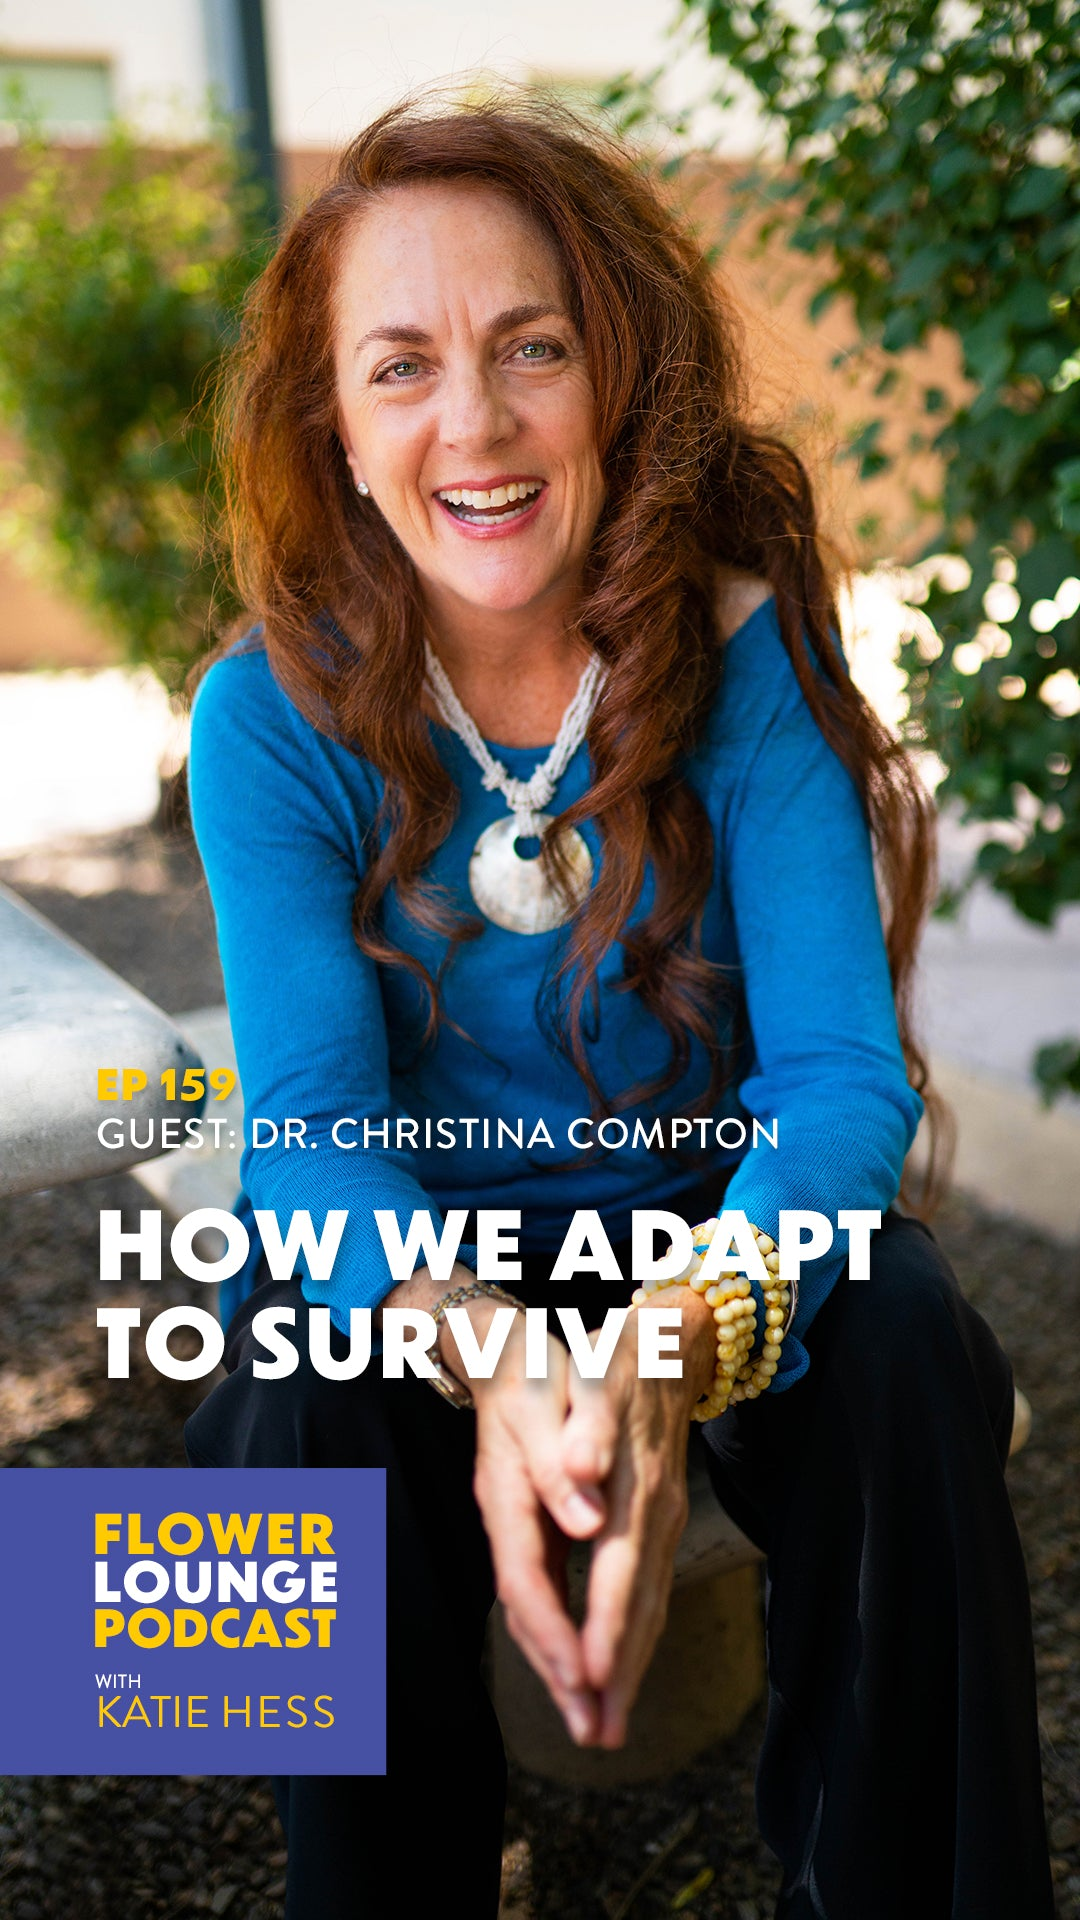 How We Adapt To Survive with Dr. Christina Compton on the Flowerlounge Podcast with Katie Hess